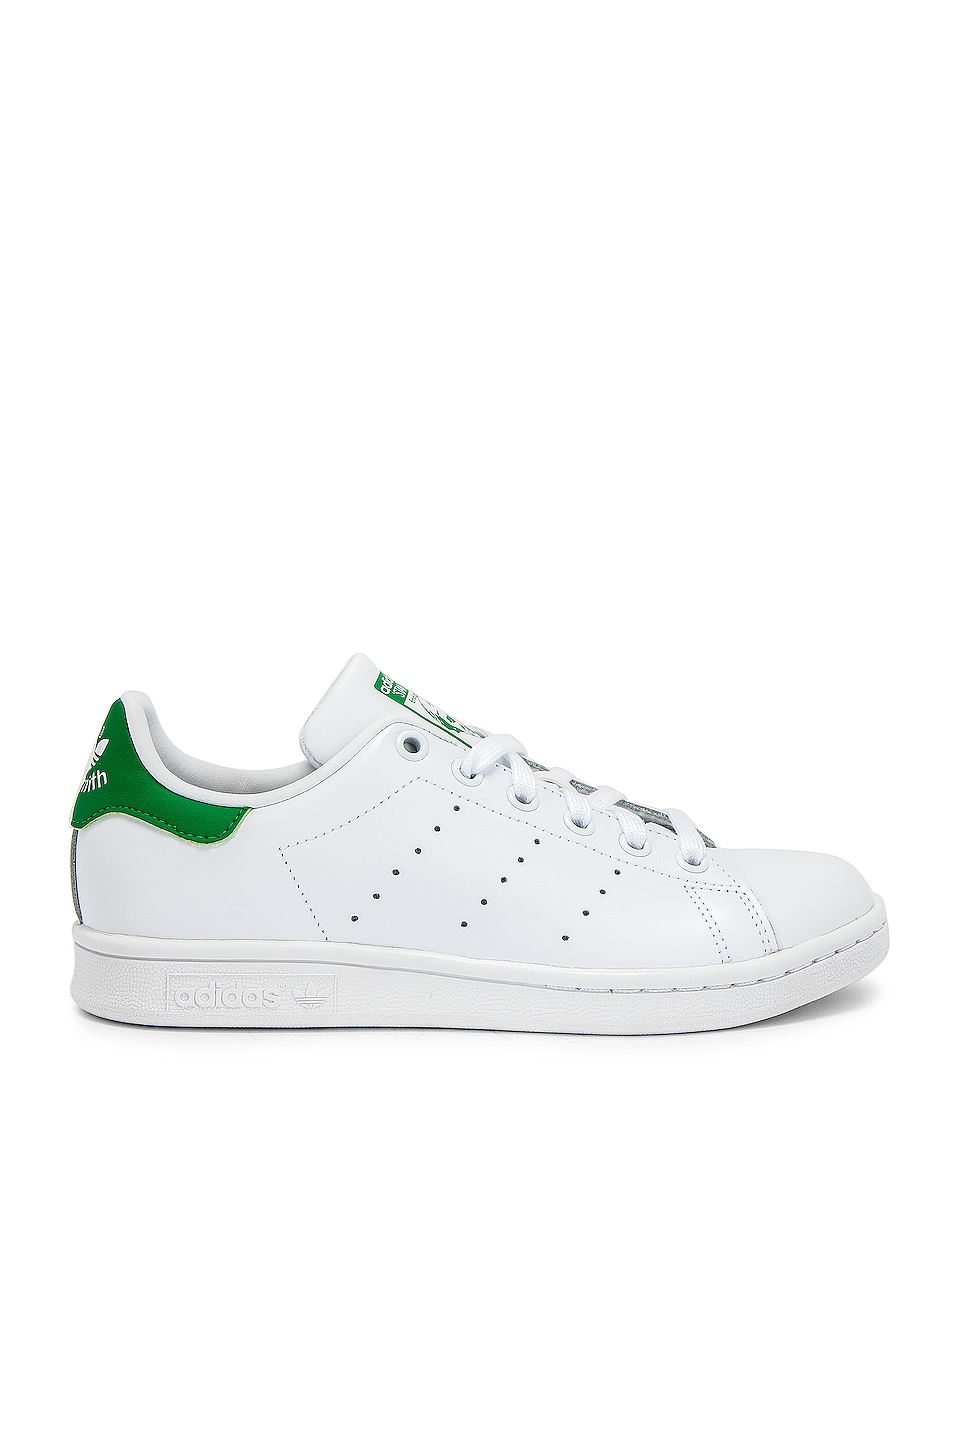 sports shoes 4030b 94189 Women's Originals Stan Smith Casual Shoes, White